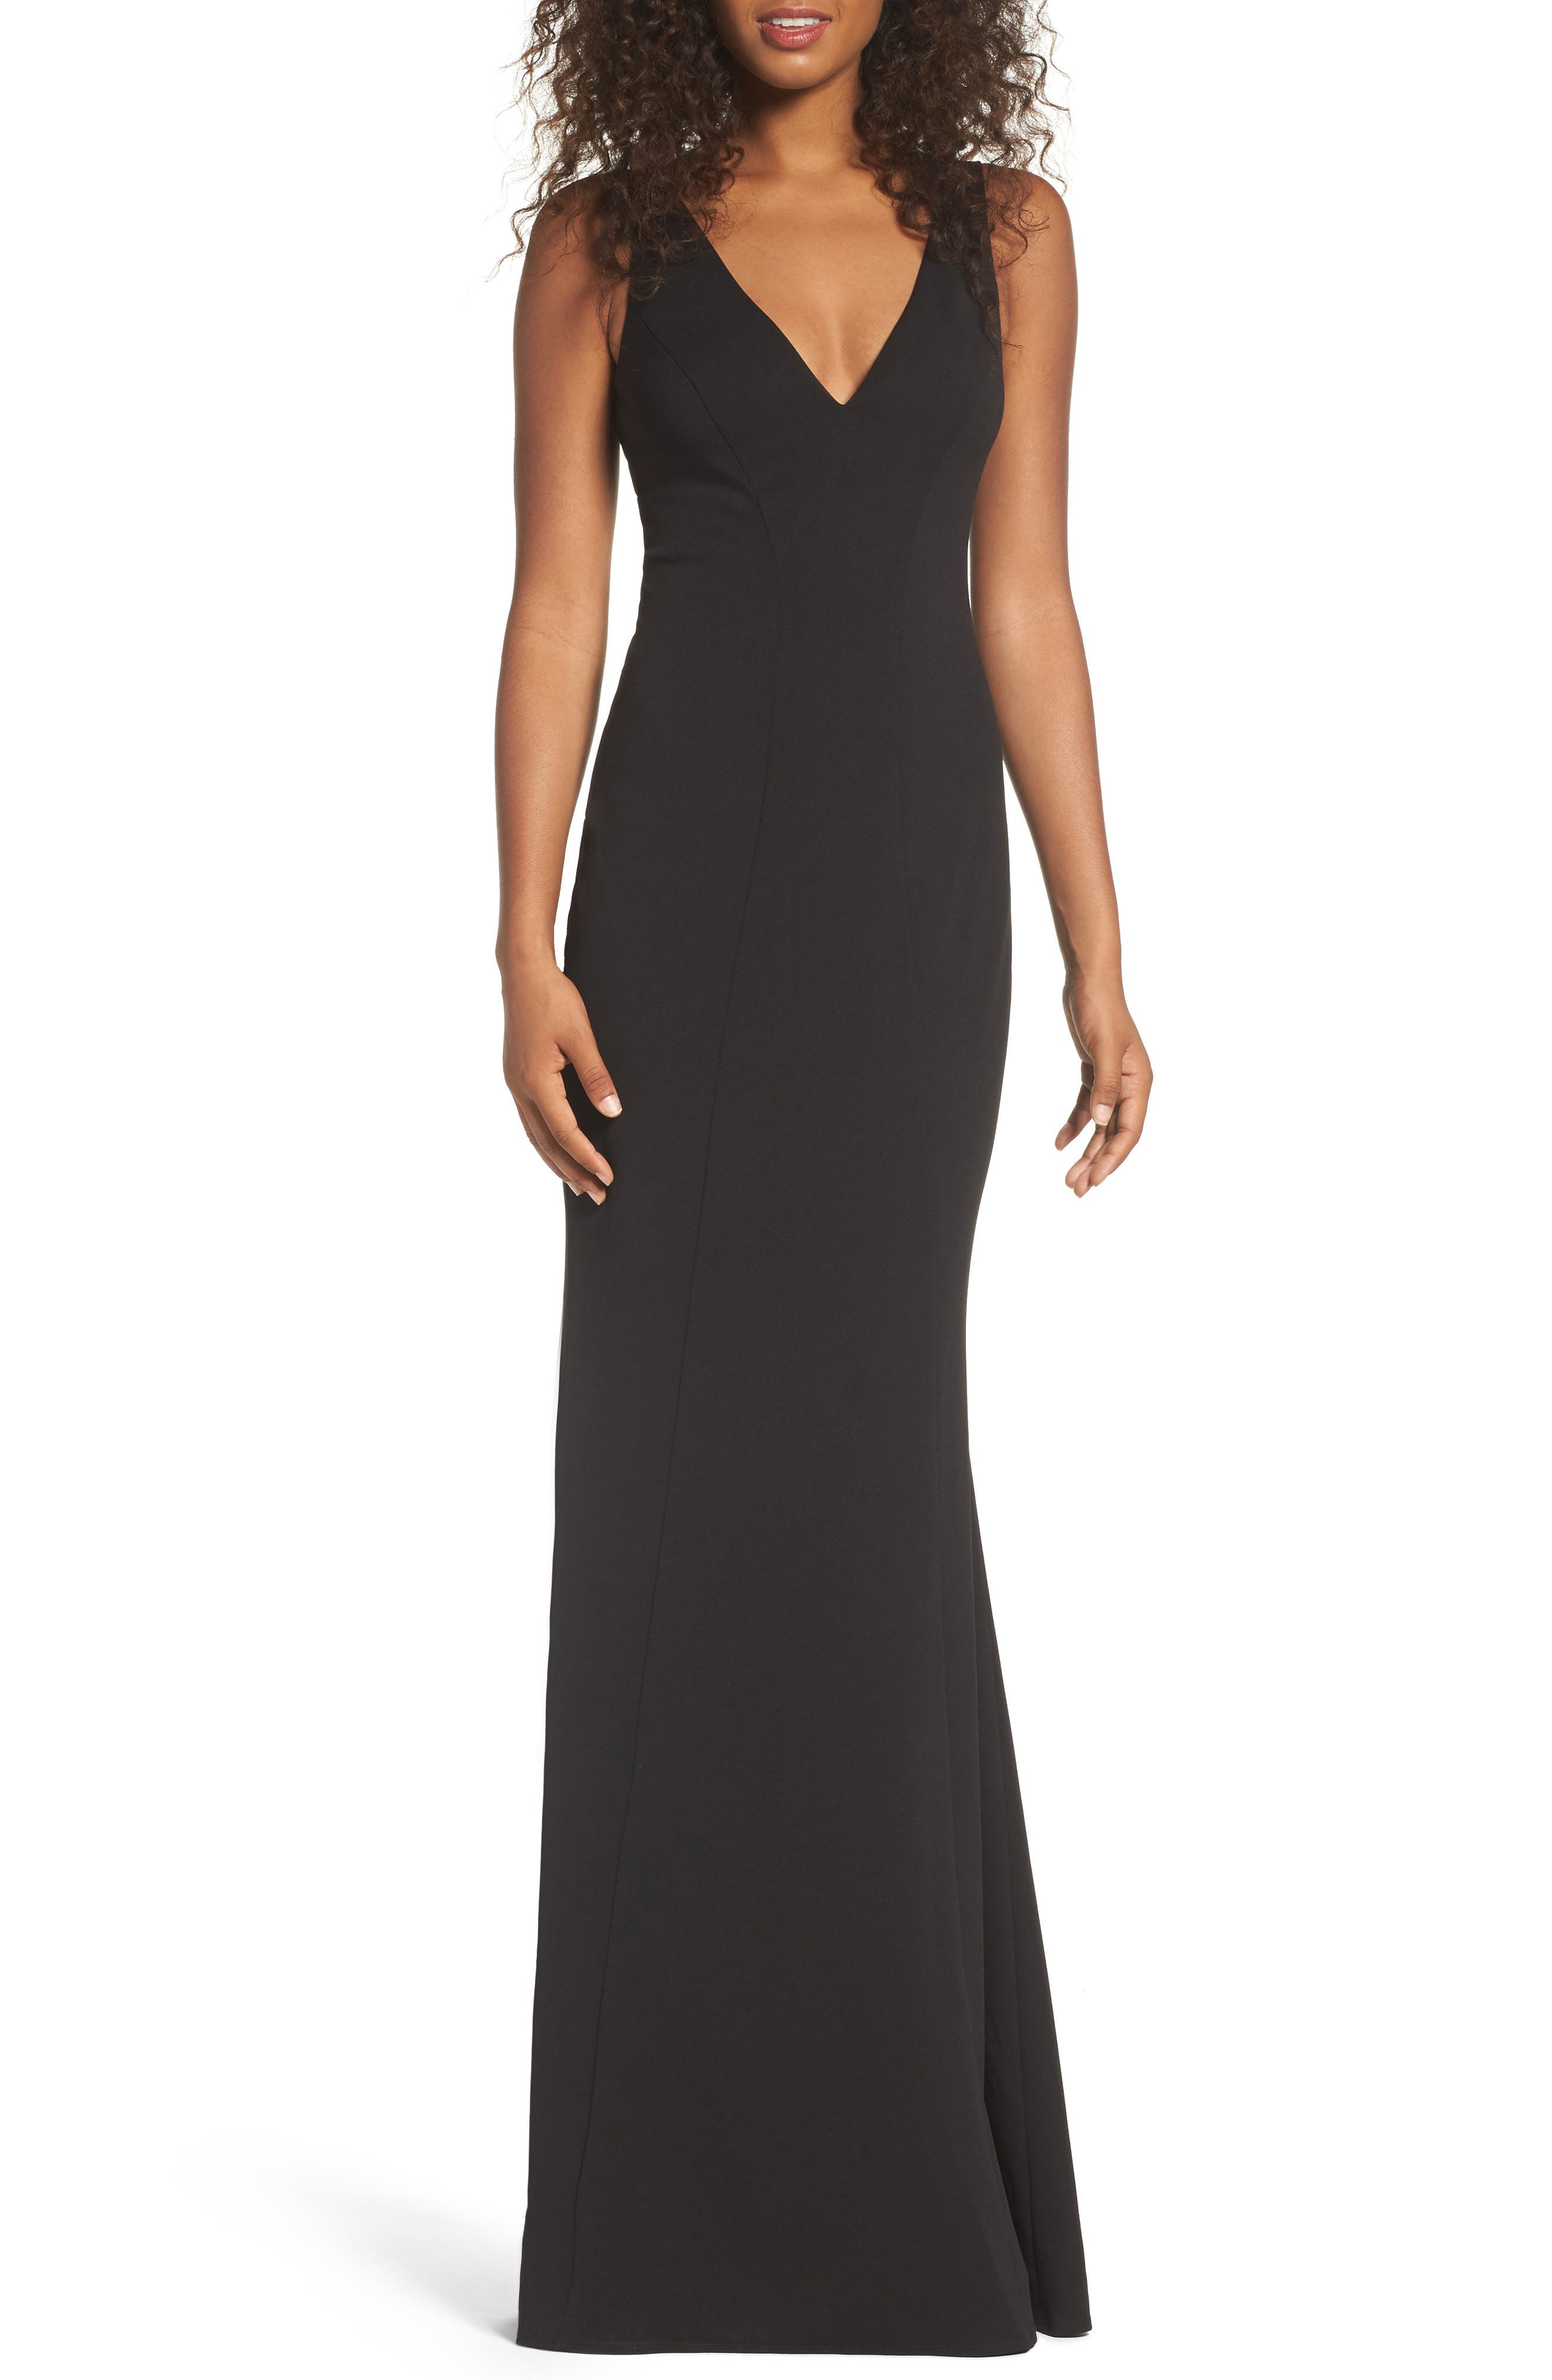 KATIE MAY Mischka V-Neck Crepe Gown, Main, color, BLACK